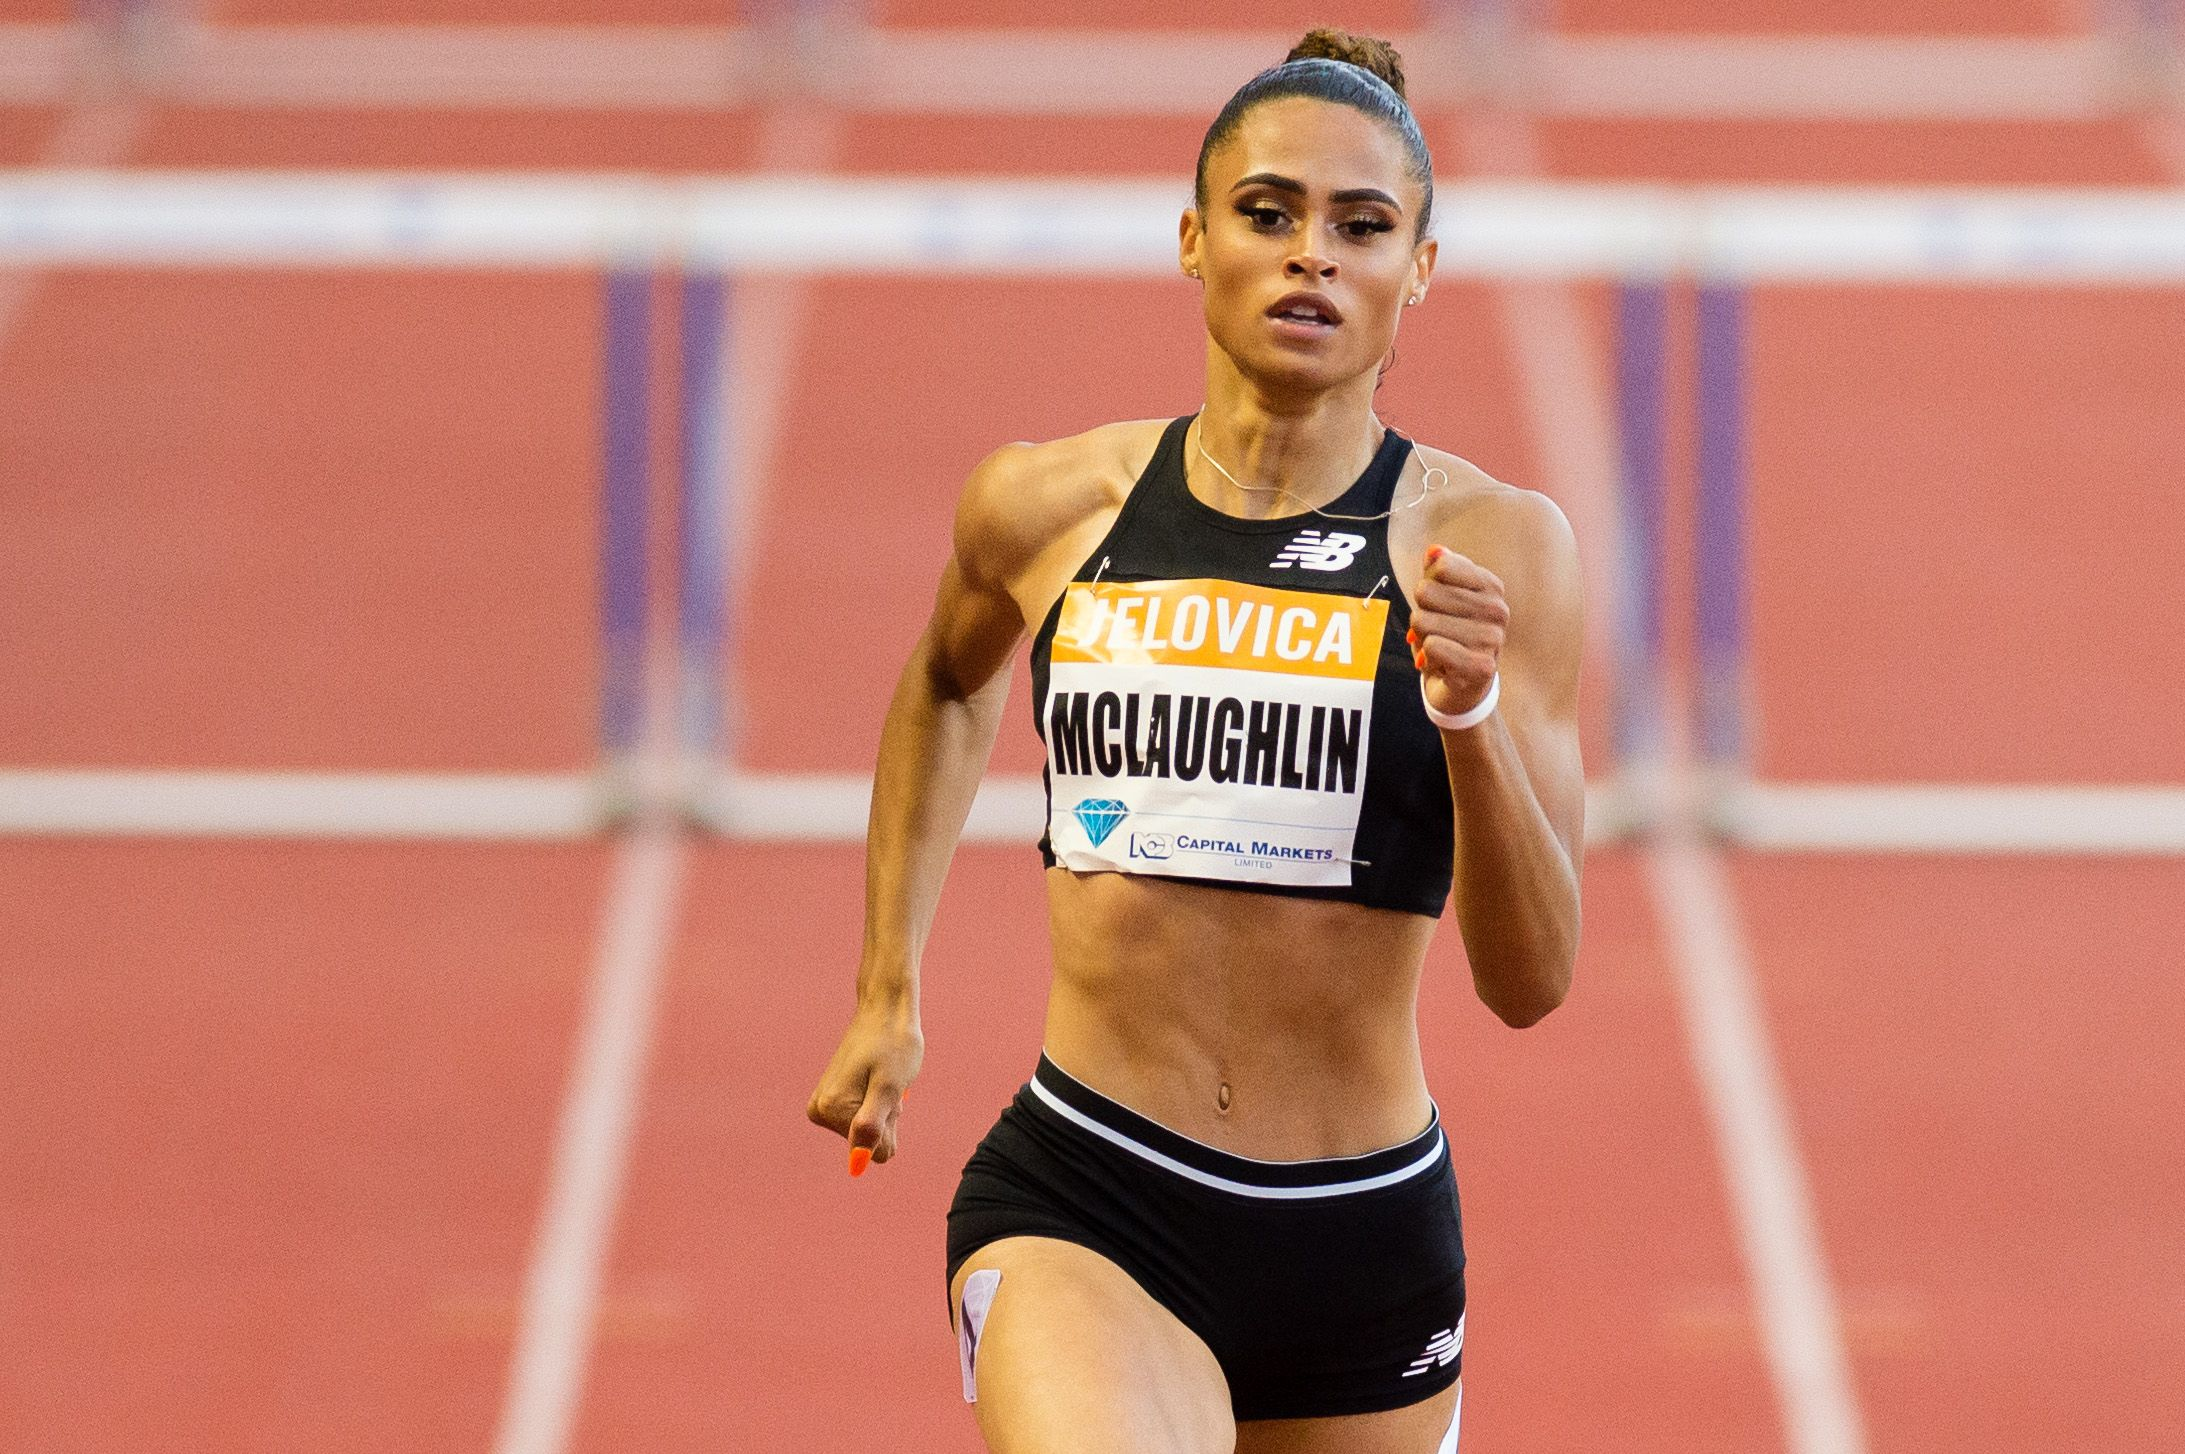 Runner Workout   Sydney McLaughlin's At-Home, Total-Body Workout